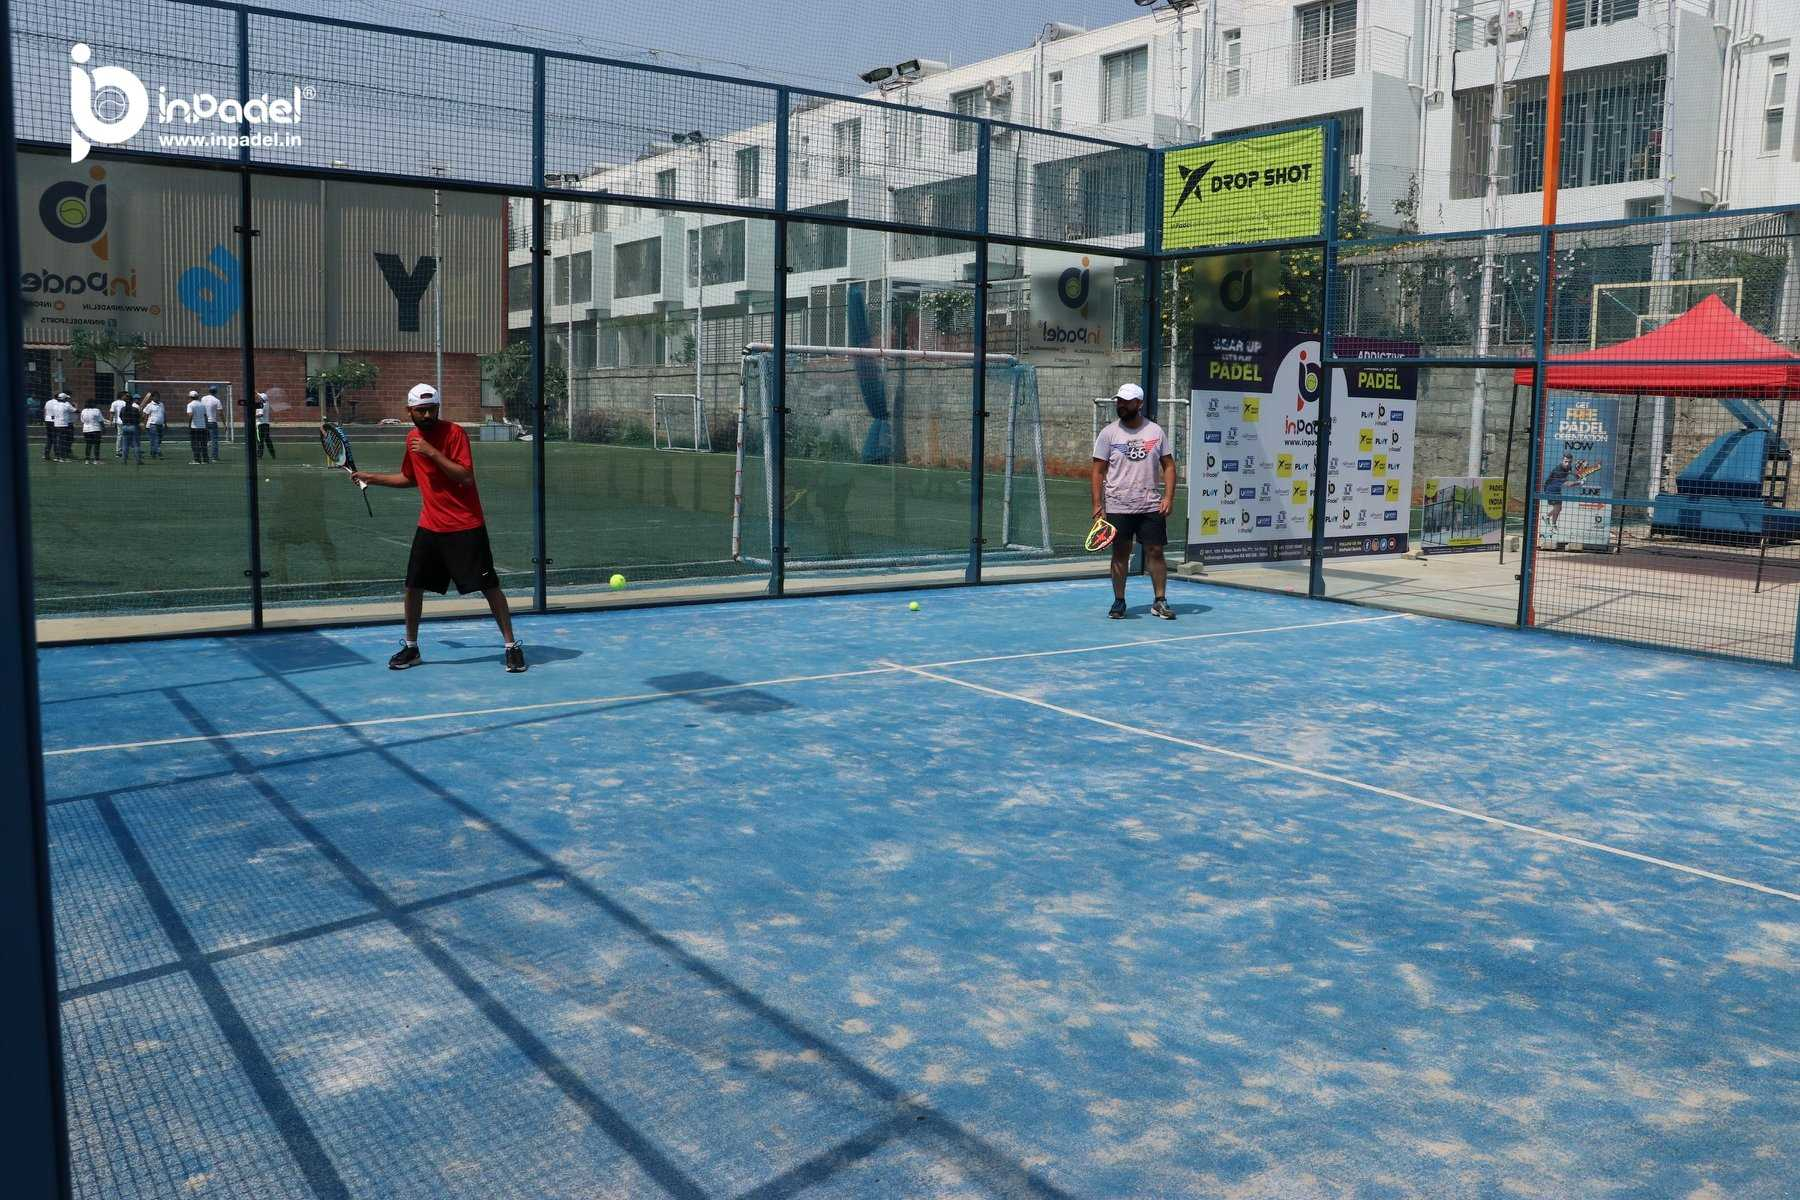 InPadel 1Yr Celebration of Padel in INDIA - Padel - Padel India (4)